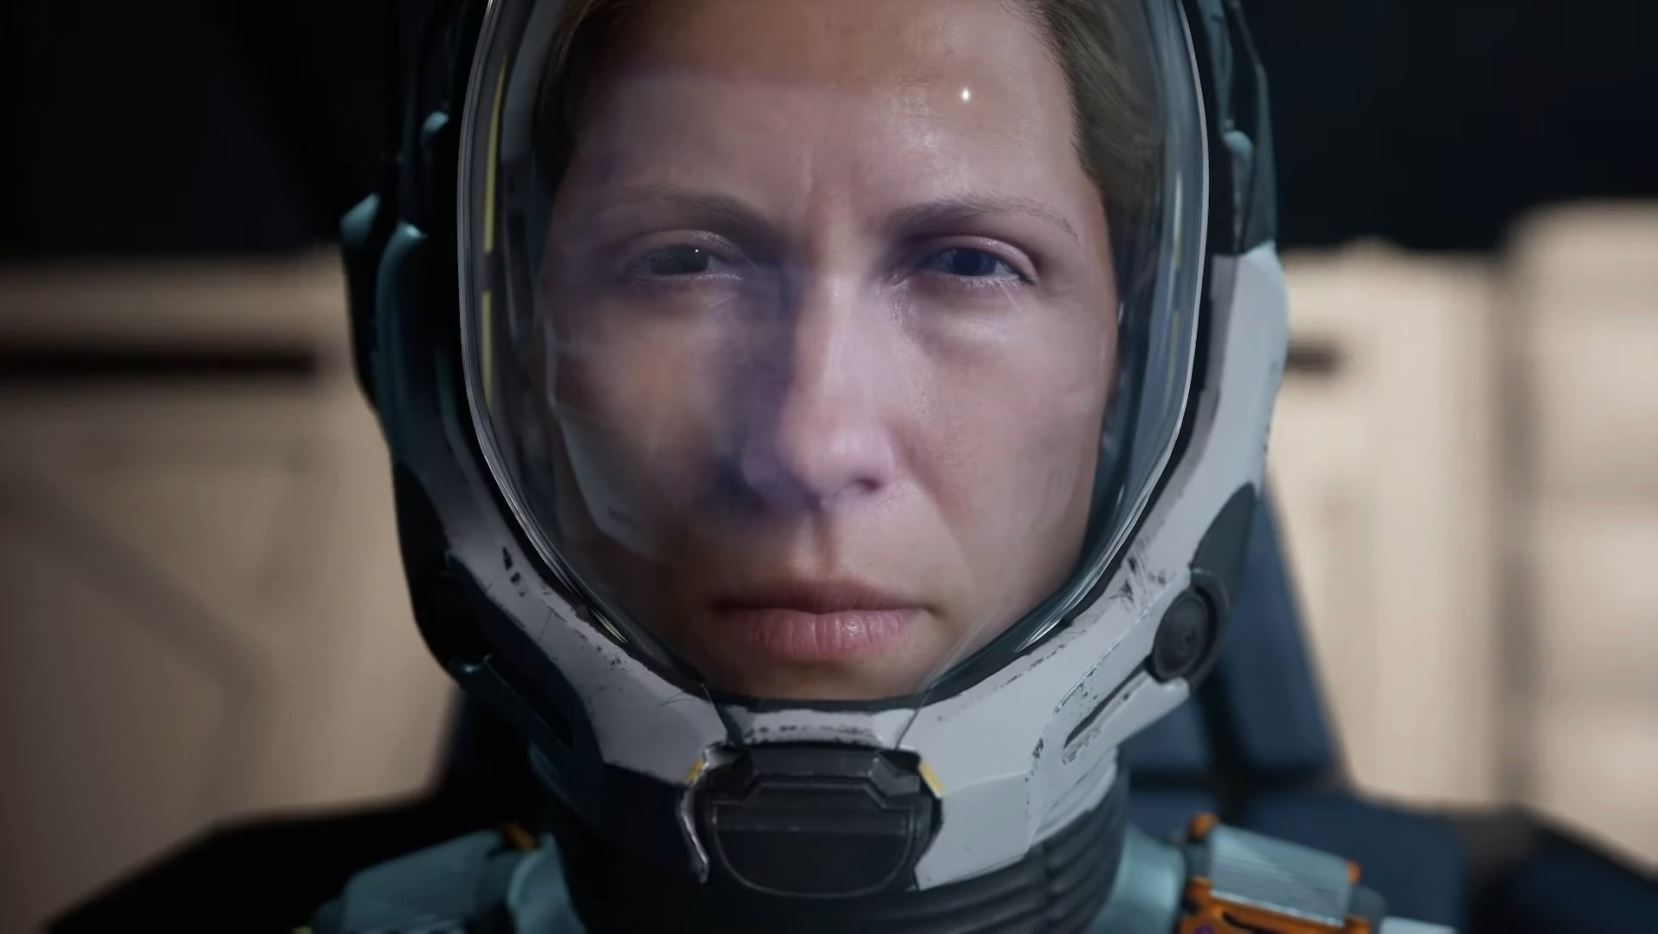 get-a-fresh-look-at-the-narrative-and-set-up-of-returnal-in-the-latest-ps5-gameplay-trailer